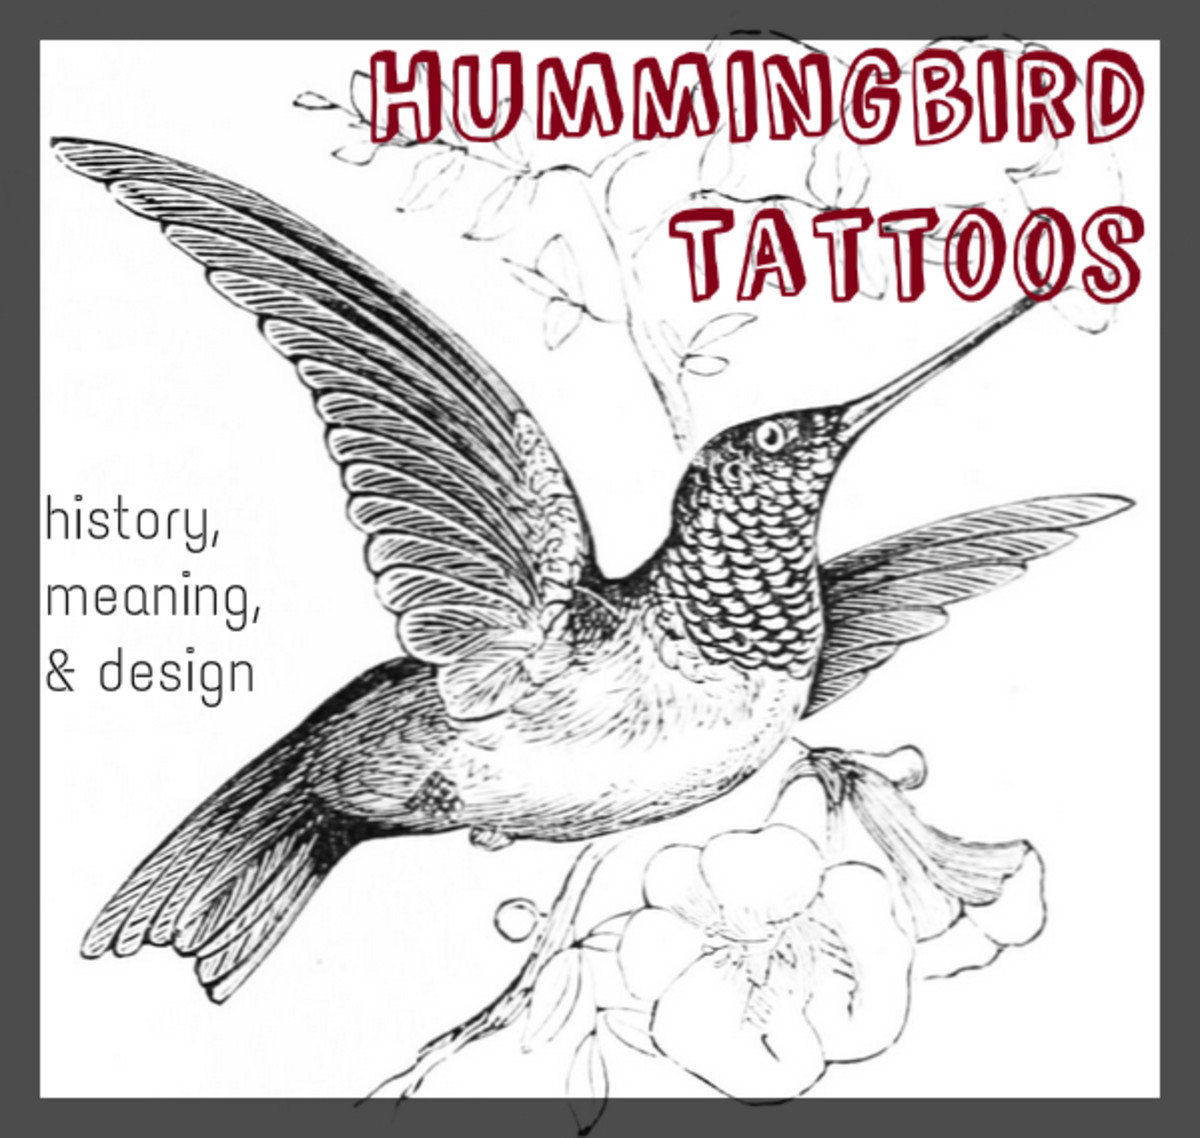 Hummingbird Tattoos: Meanings, Designs, History, and Photos